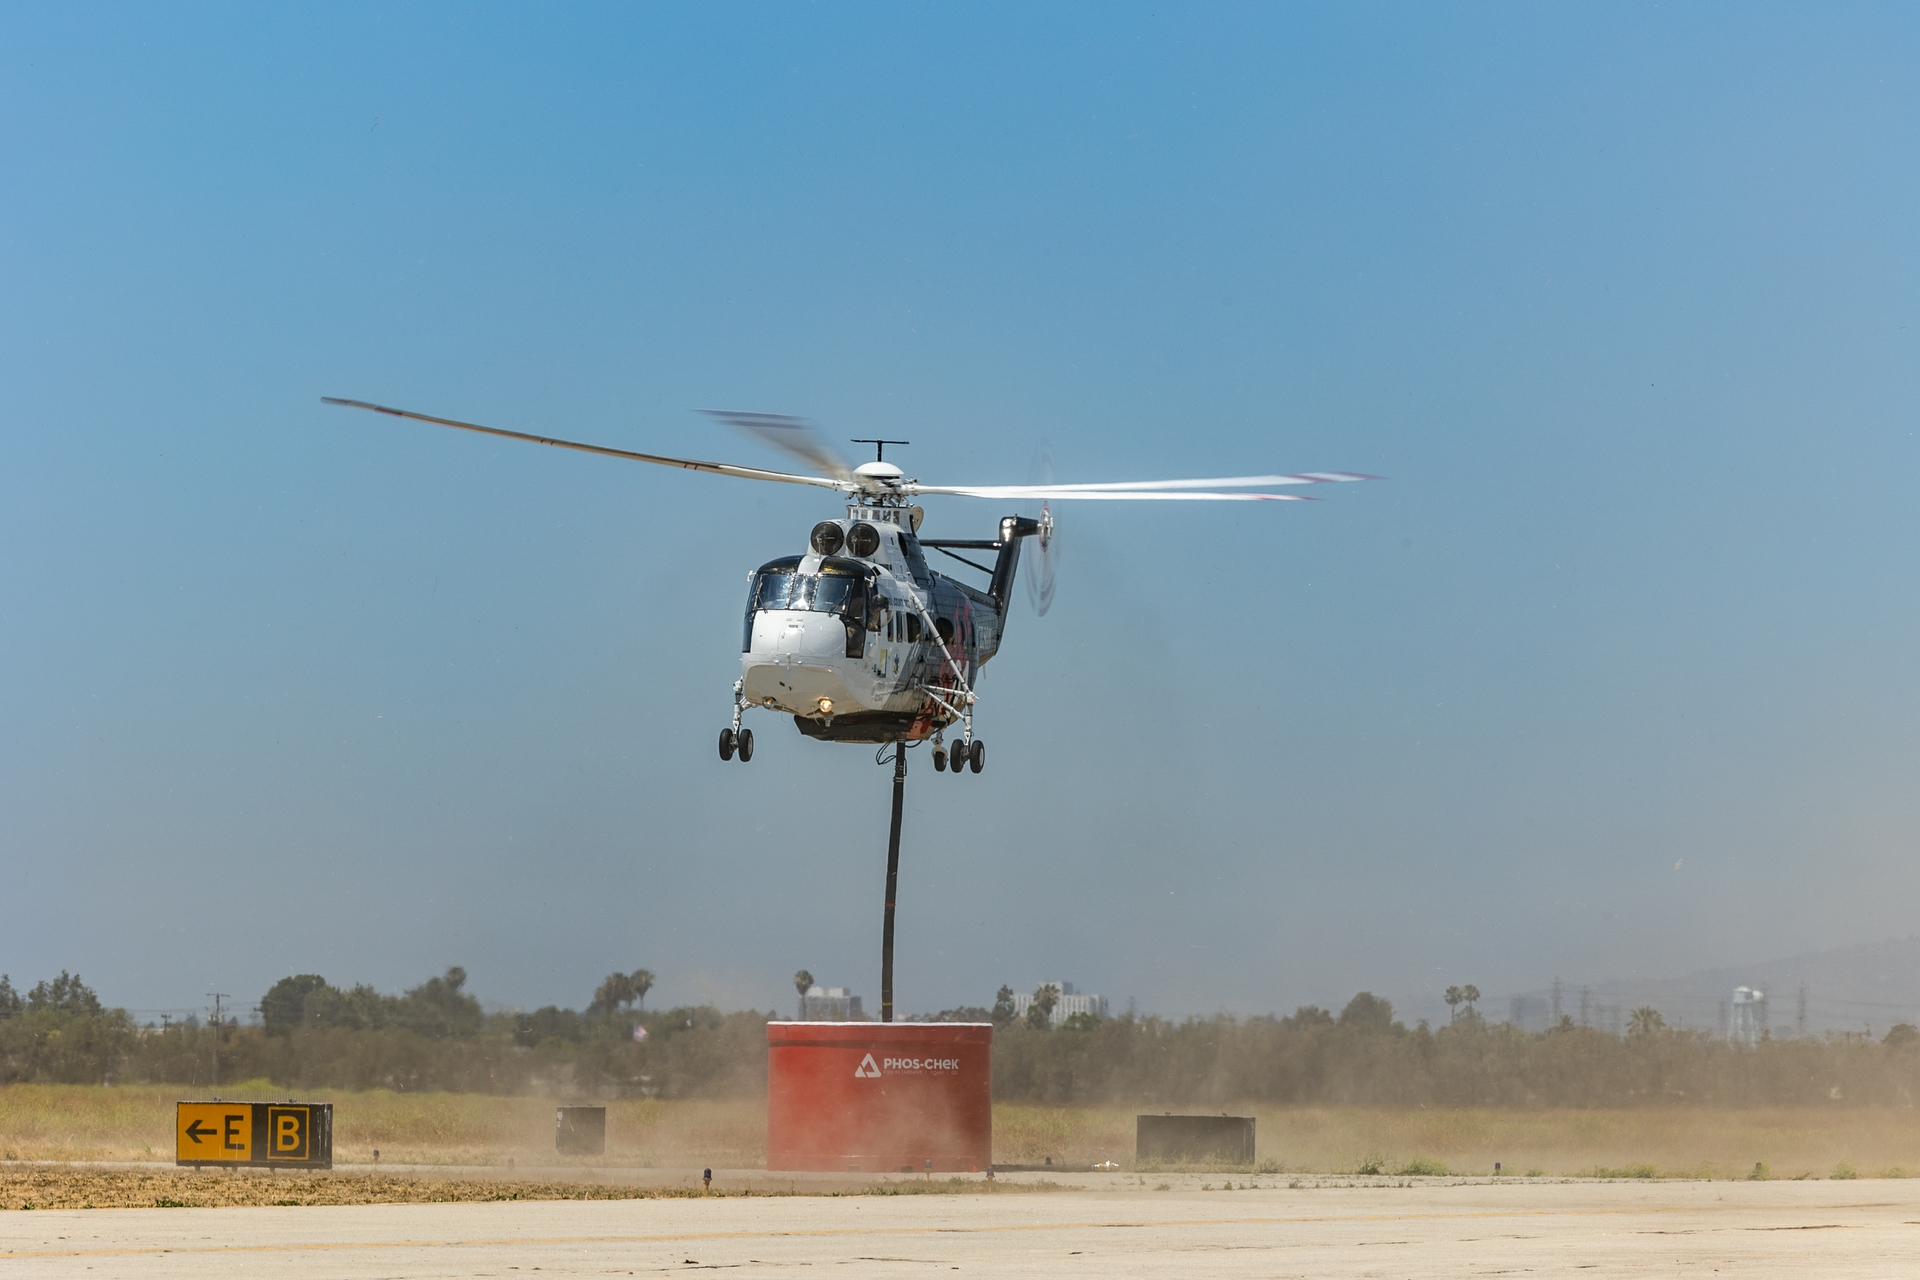 The helitankers can function during the day and night, typically the best time to stop a wildfire, as winds die down, temperatures ease and humidity rises.